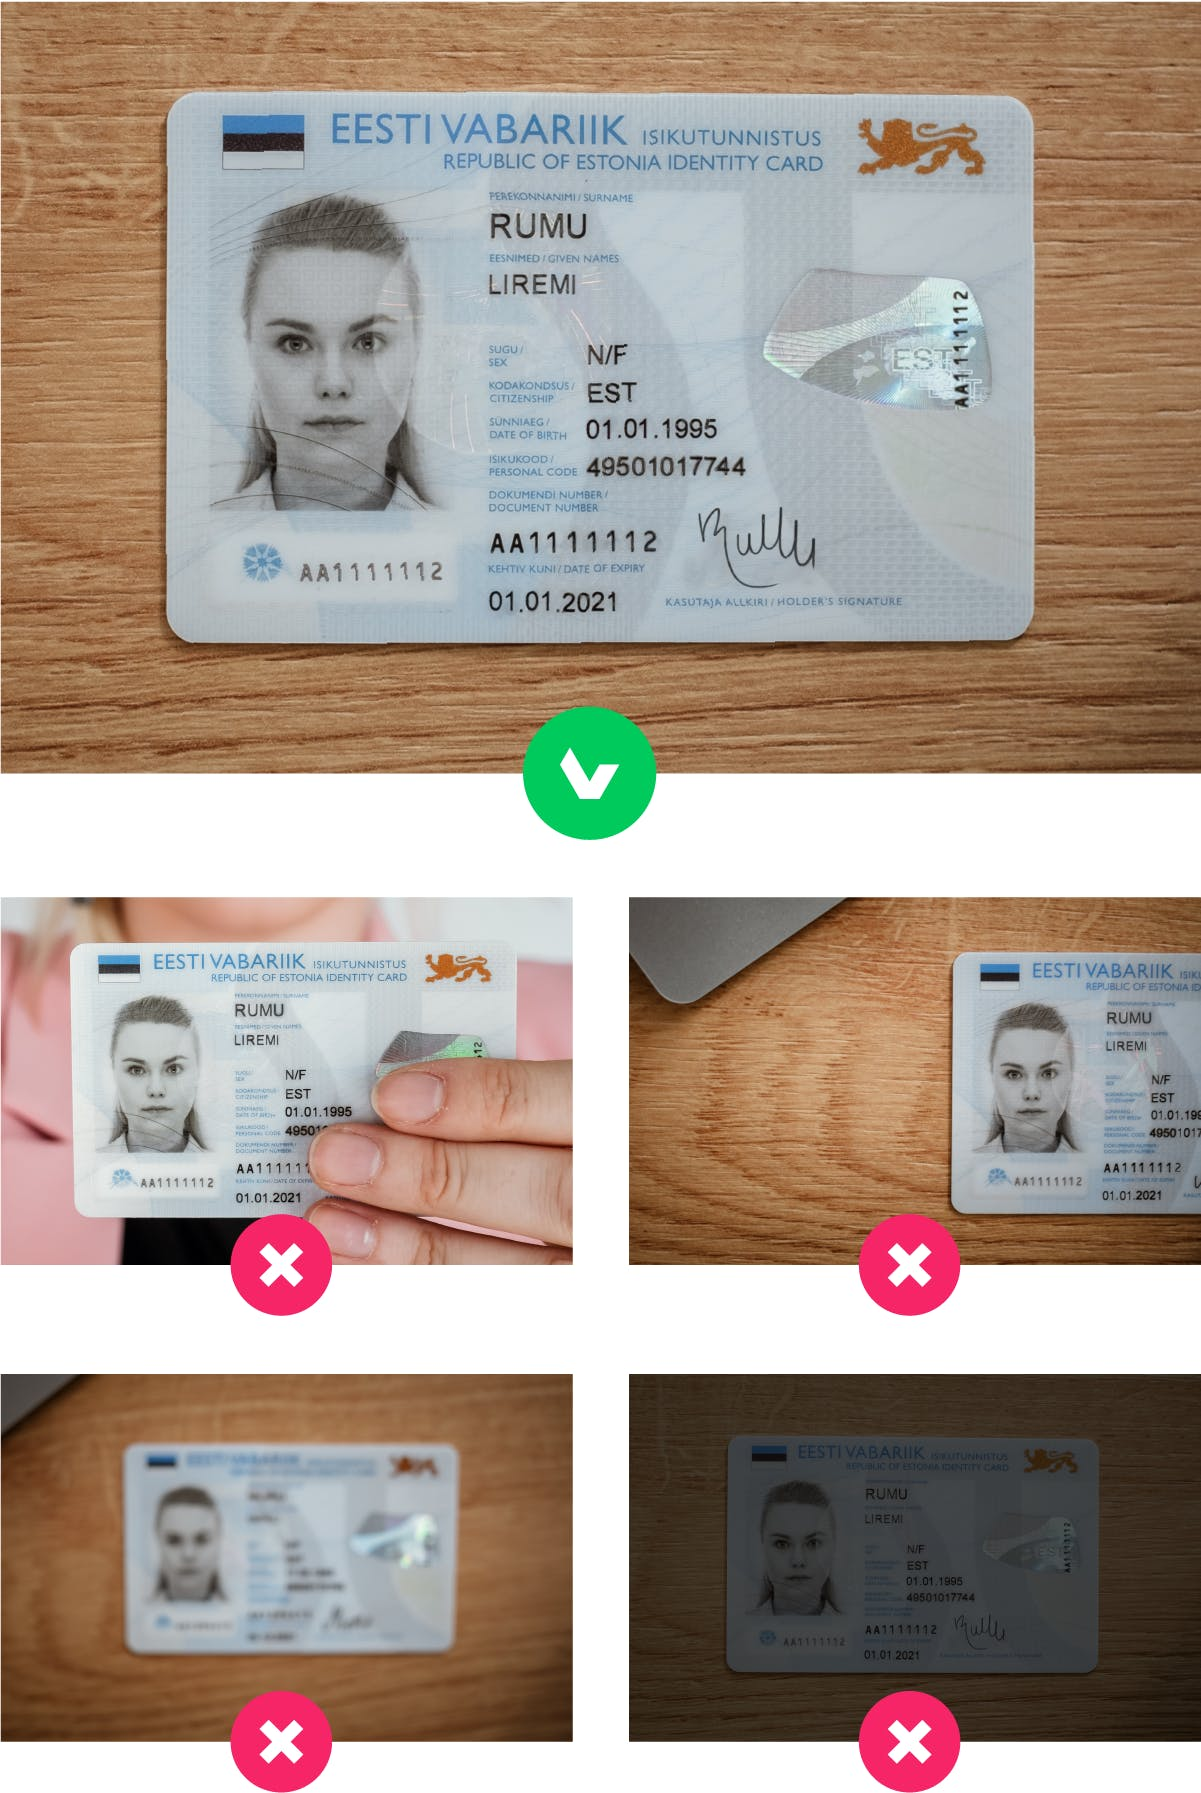 Make sure your ID is sharp and in focus on photos